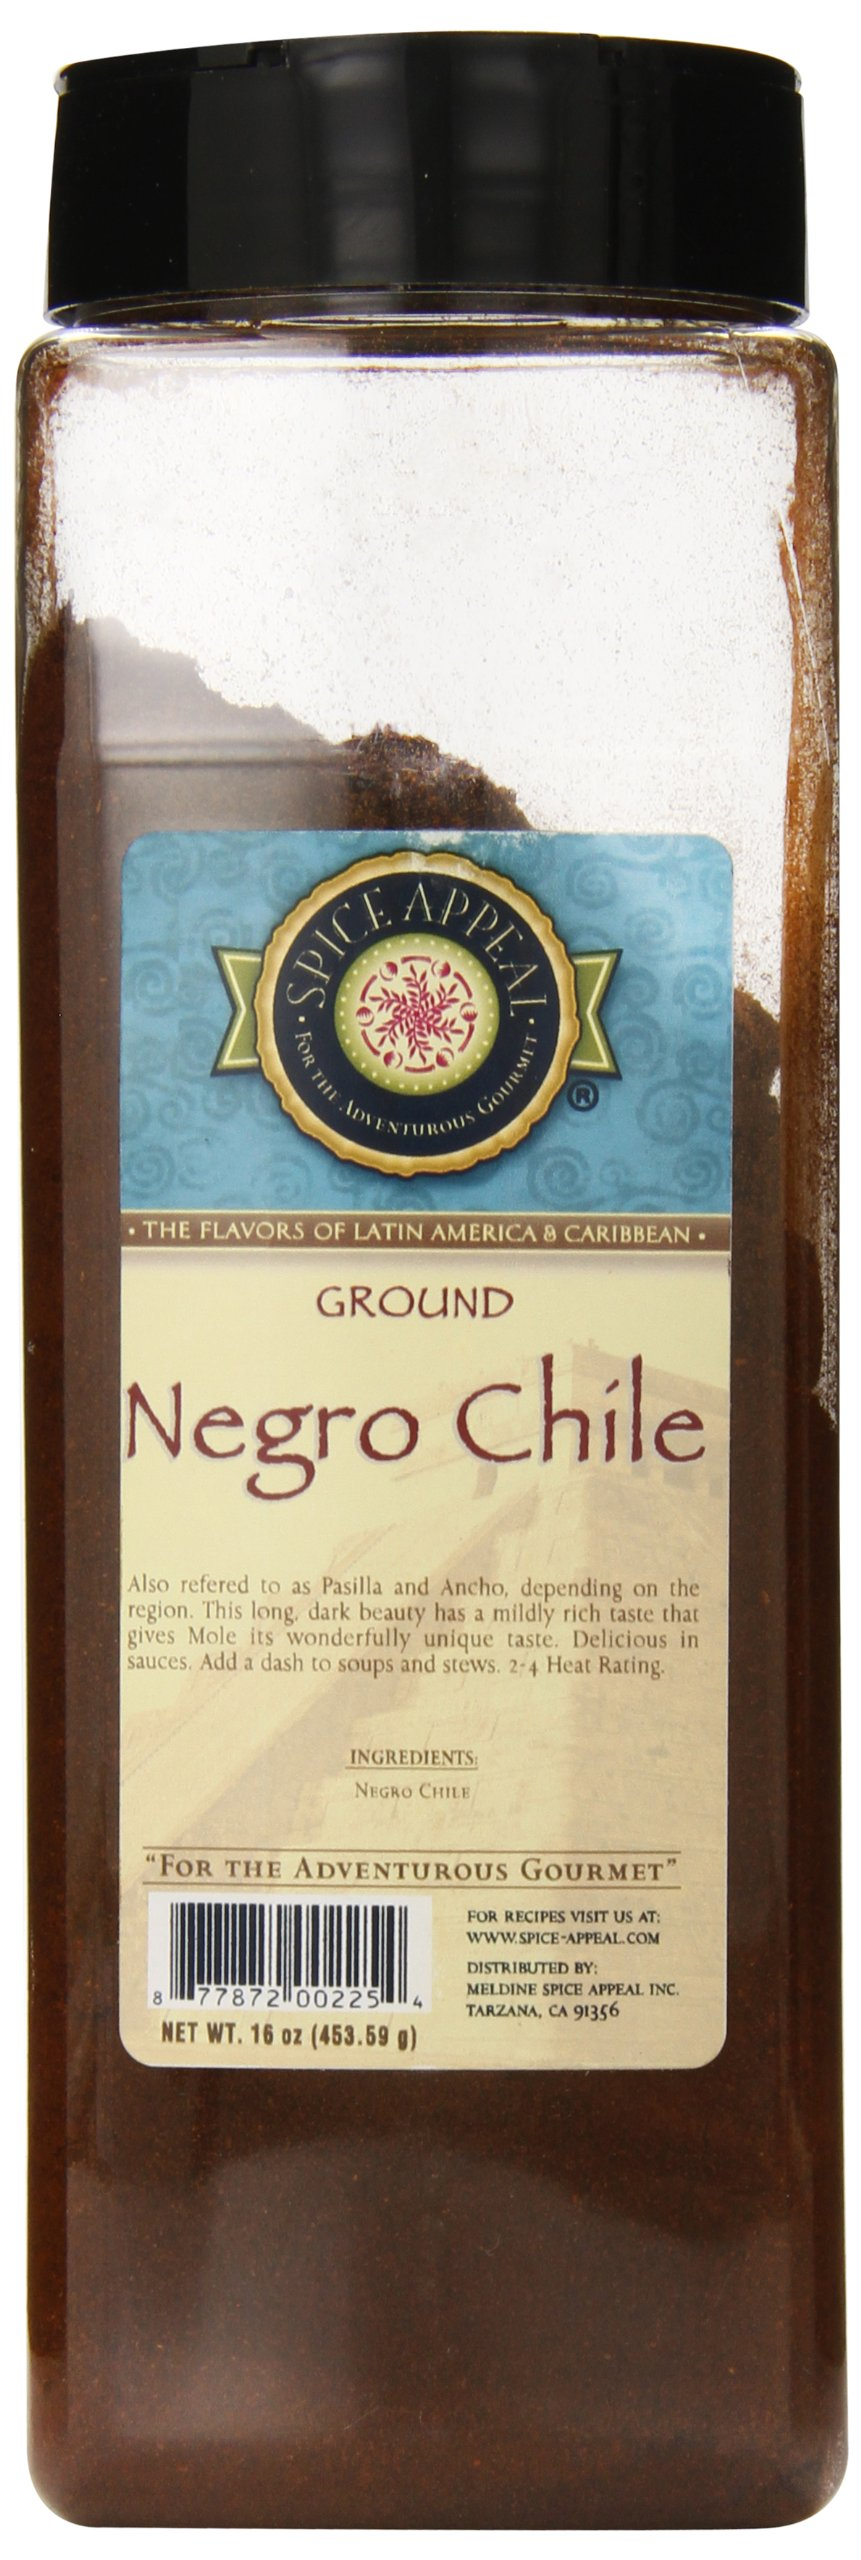 Spice Appeal Negro Chile Ground, 16 Ounce